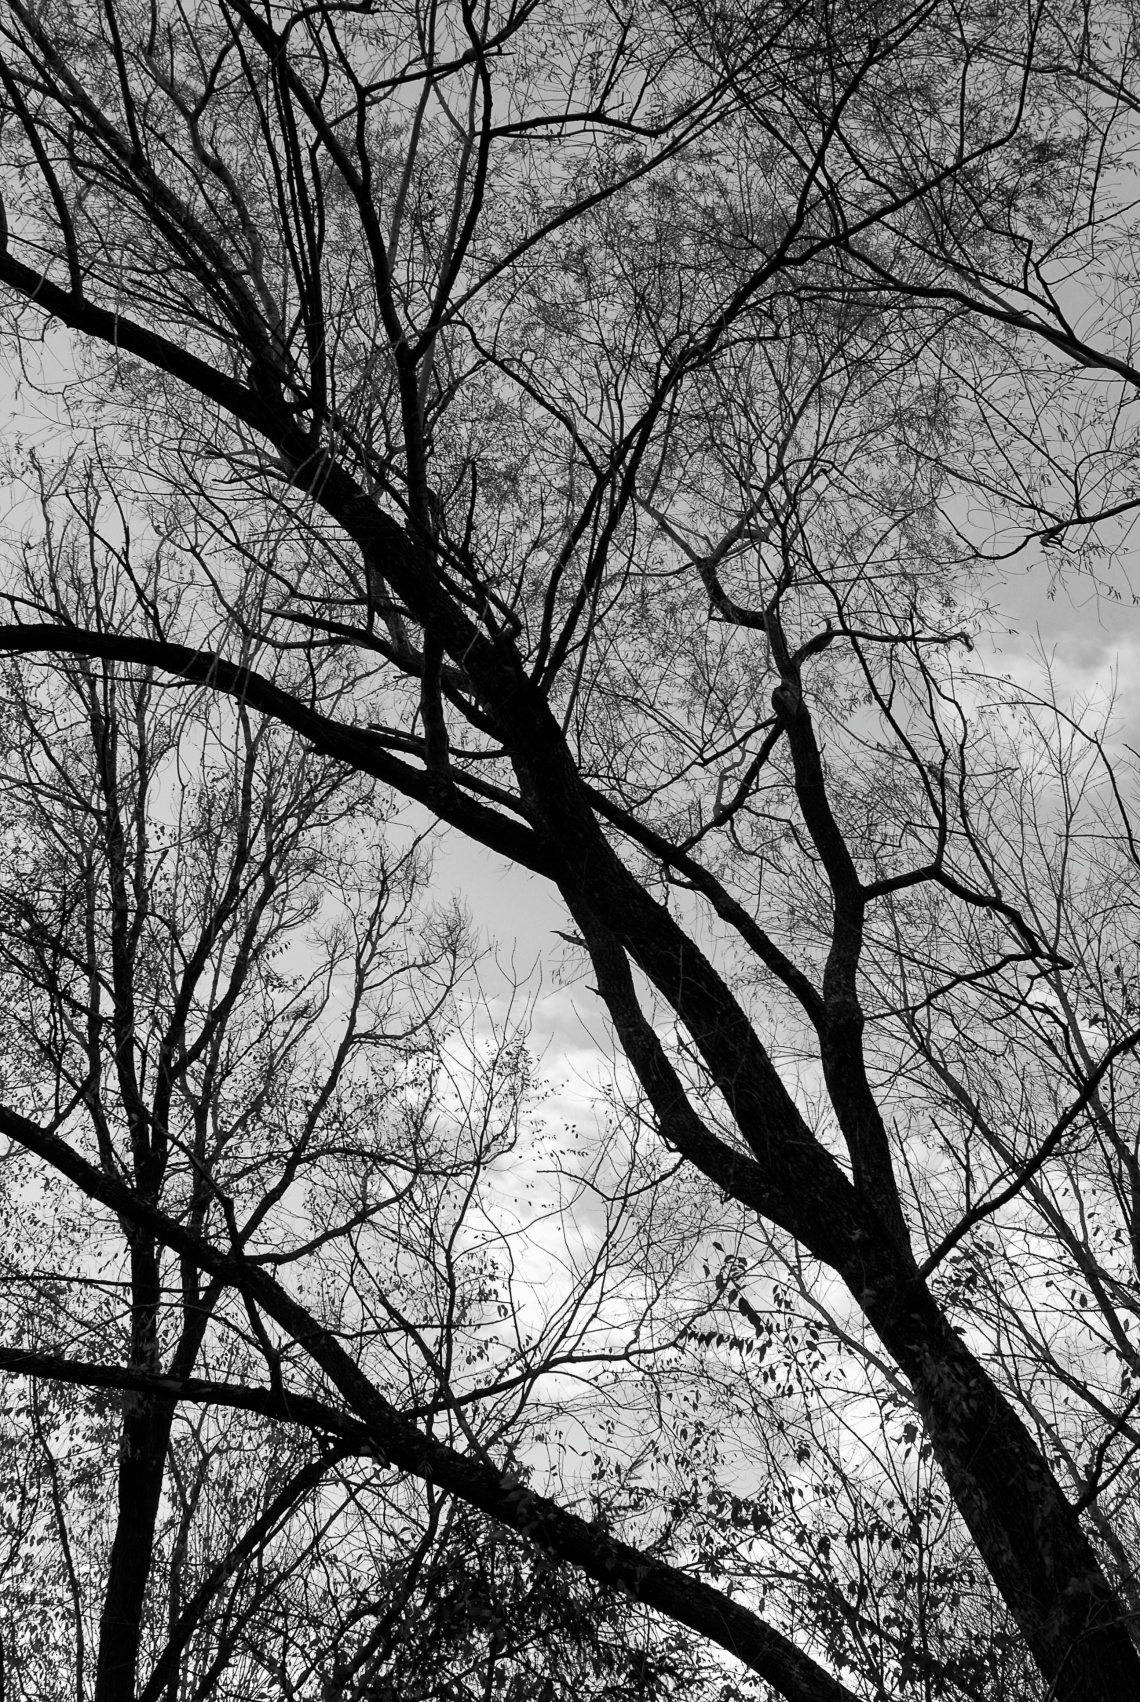 The black silhouette of a tree against the early evening sky gives a haunting performance.